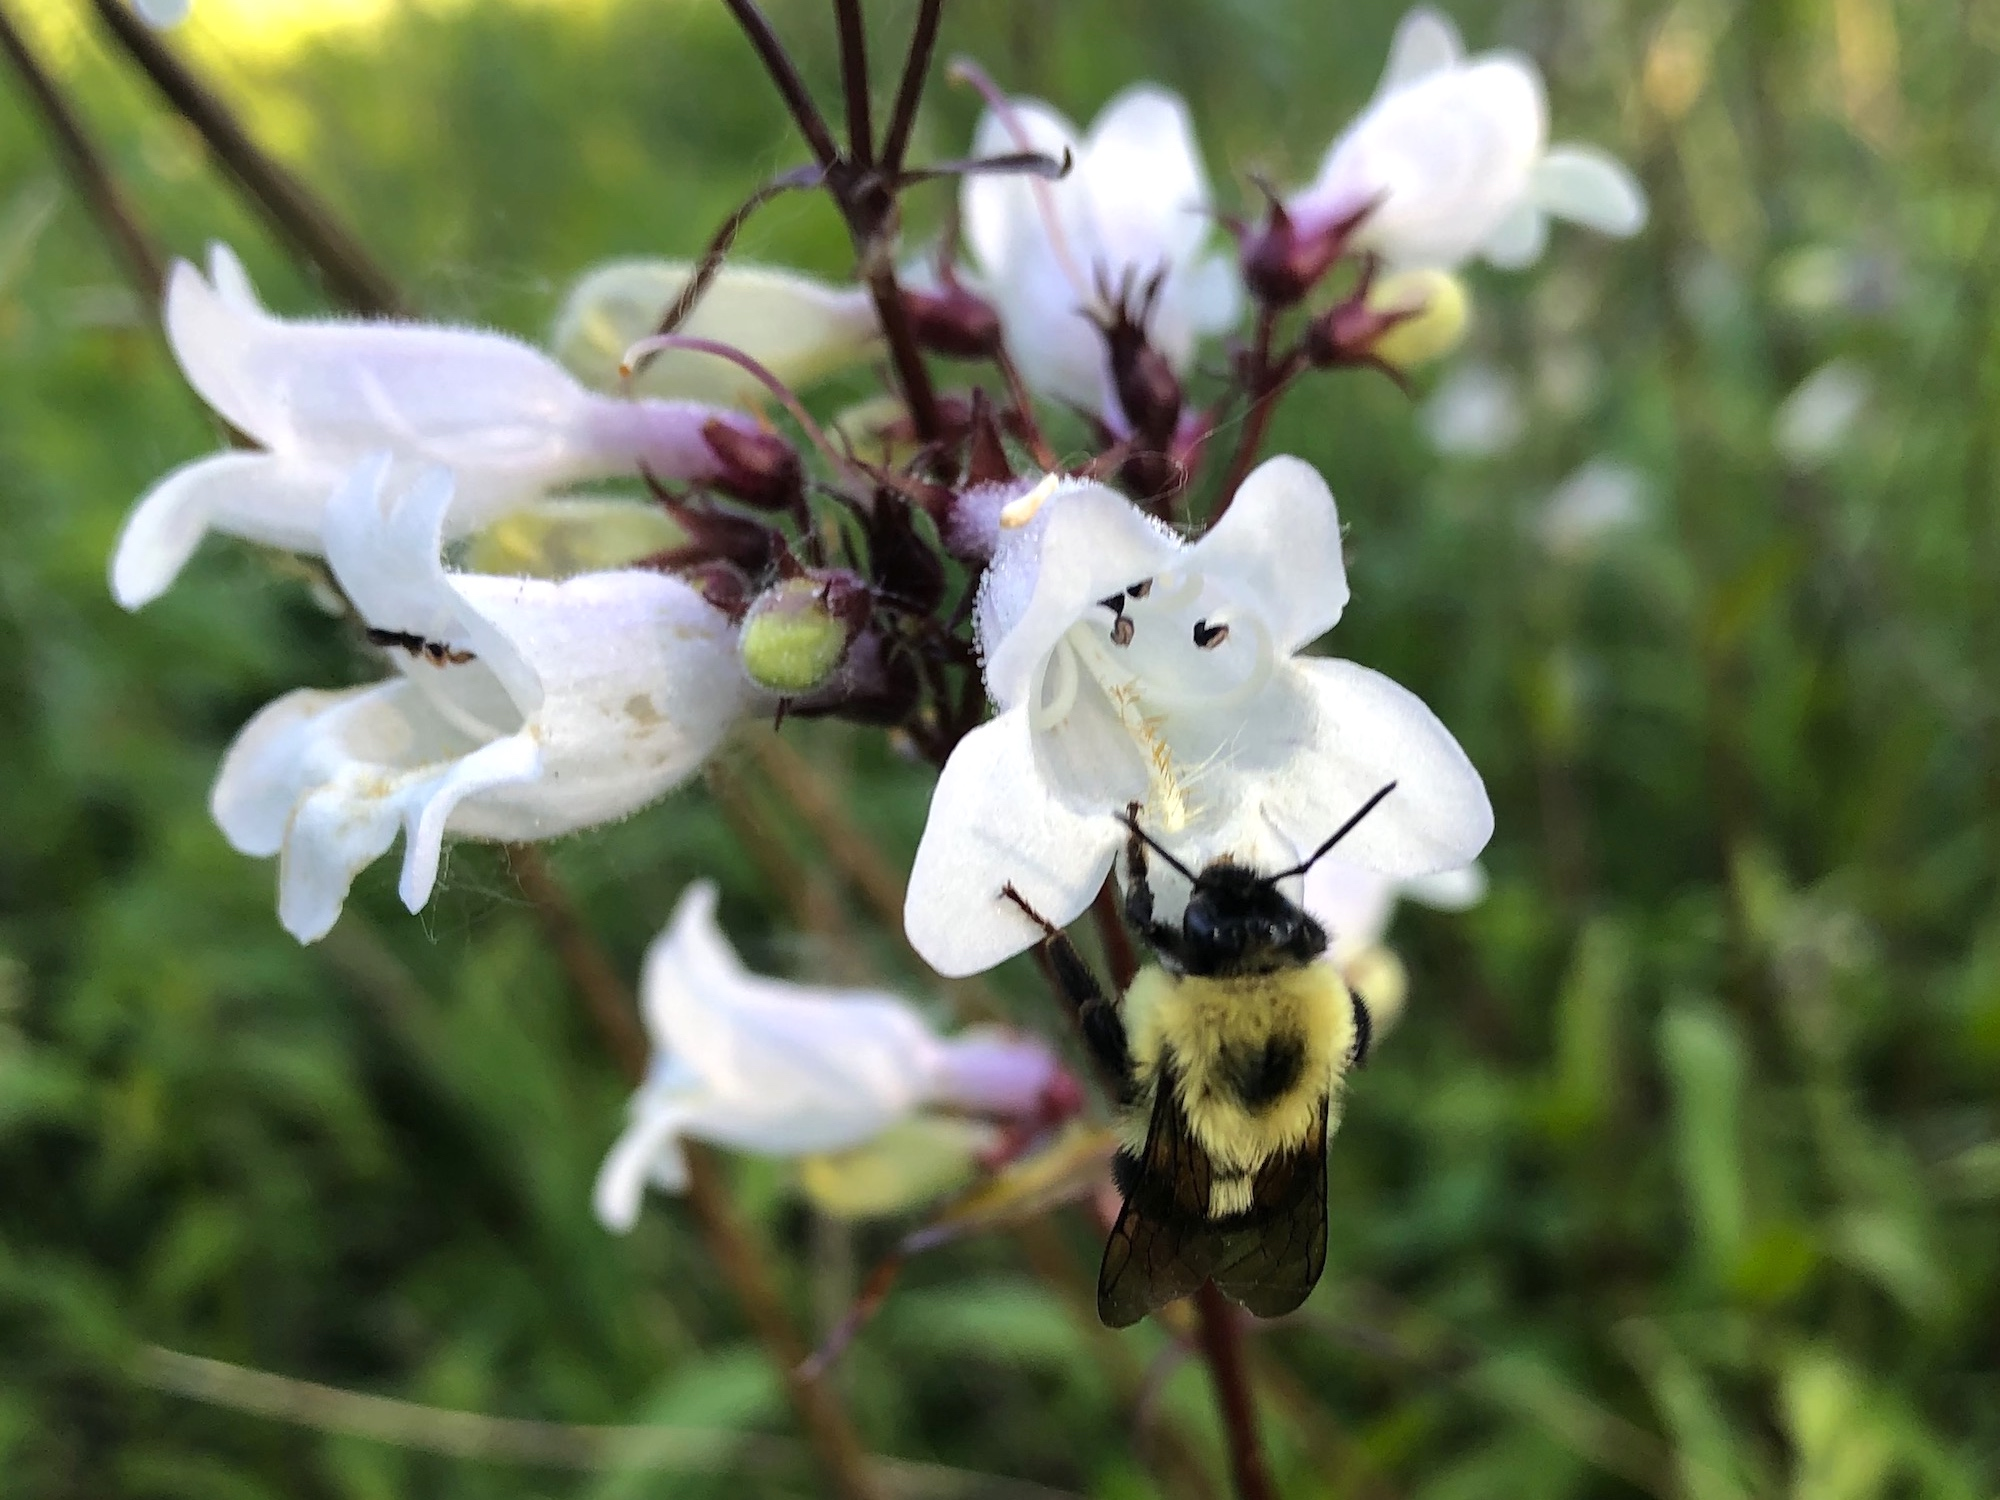 Bumblee on Foxglove Beardtongue on June 16, 2020.